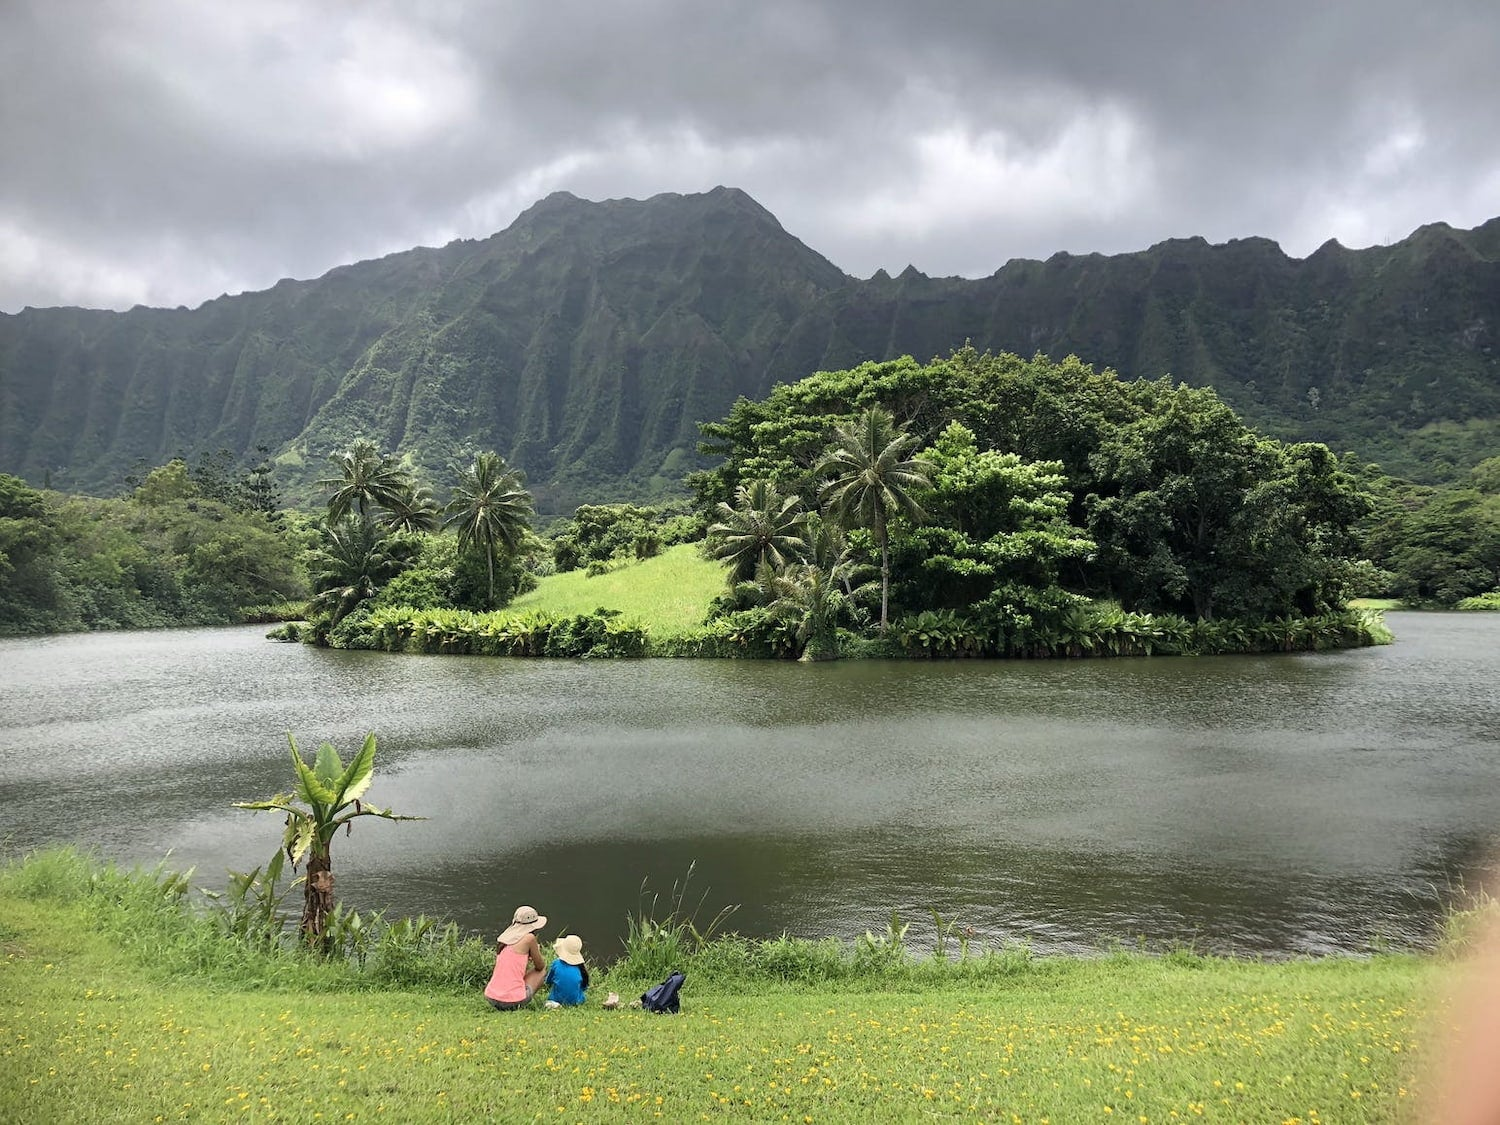 two people sitting on grass near the water